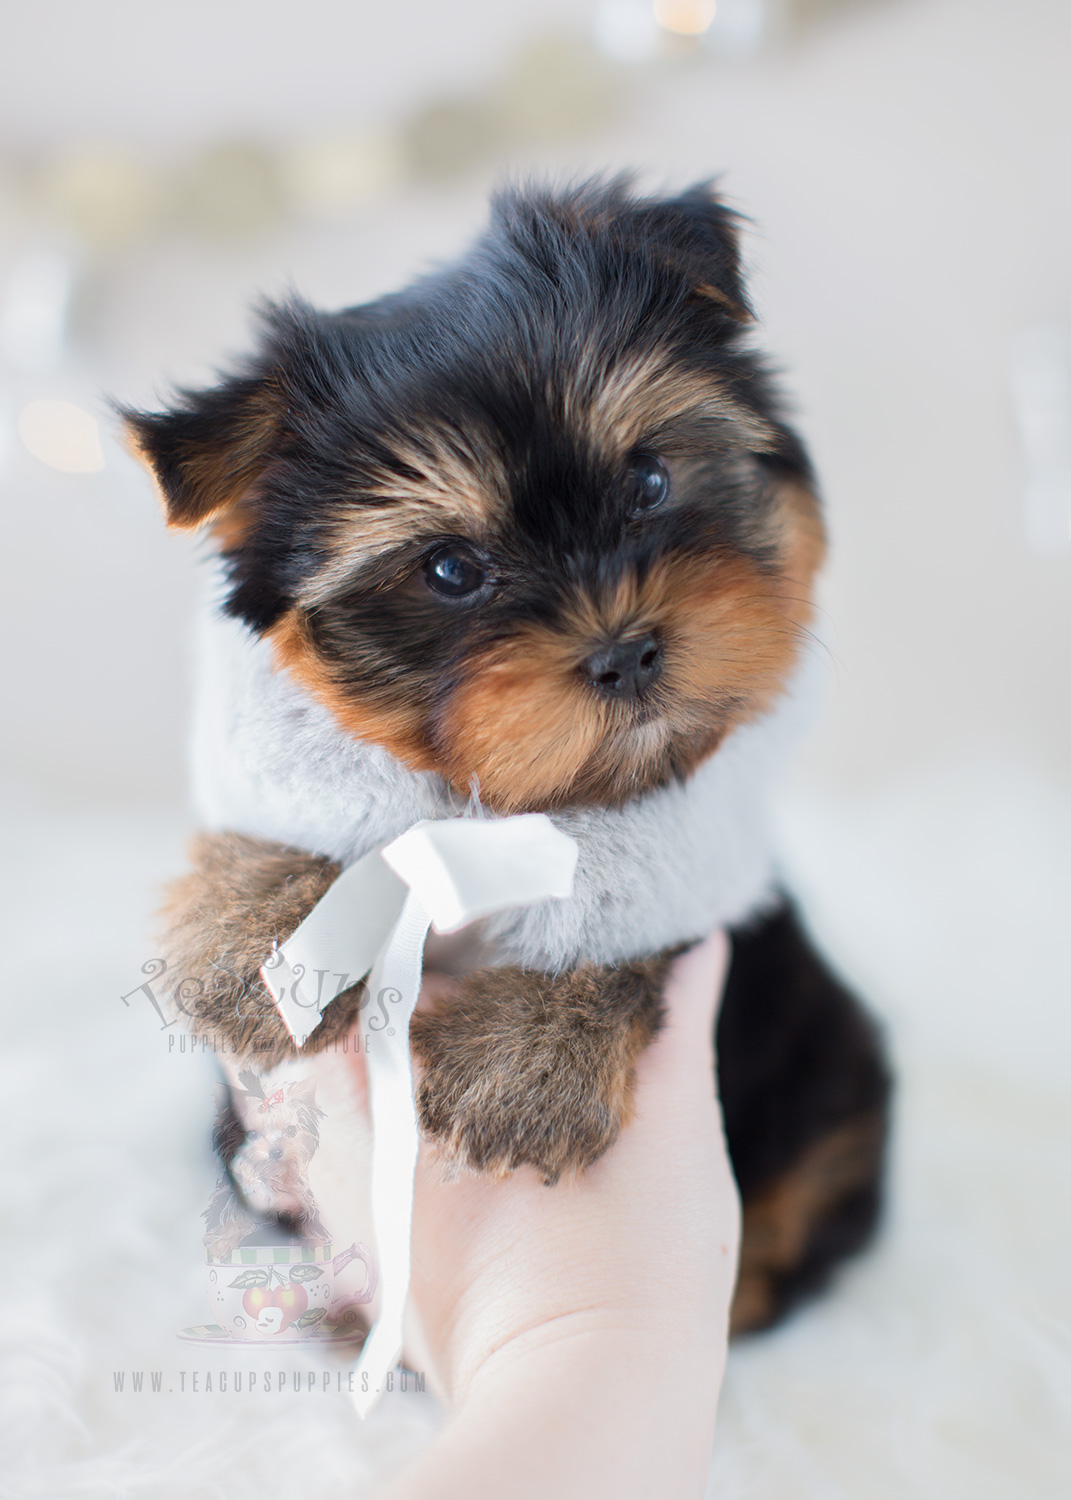 Puppy For Sale #297 Teacup Puppies Yorkie Puppy